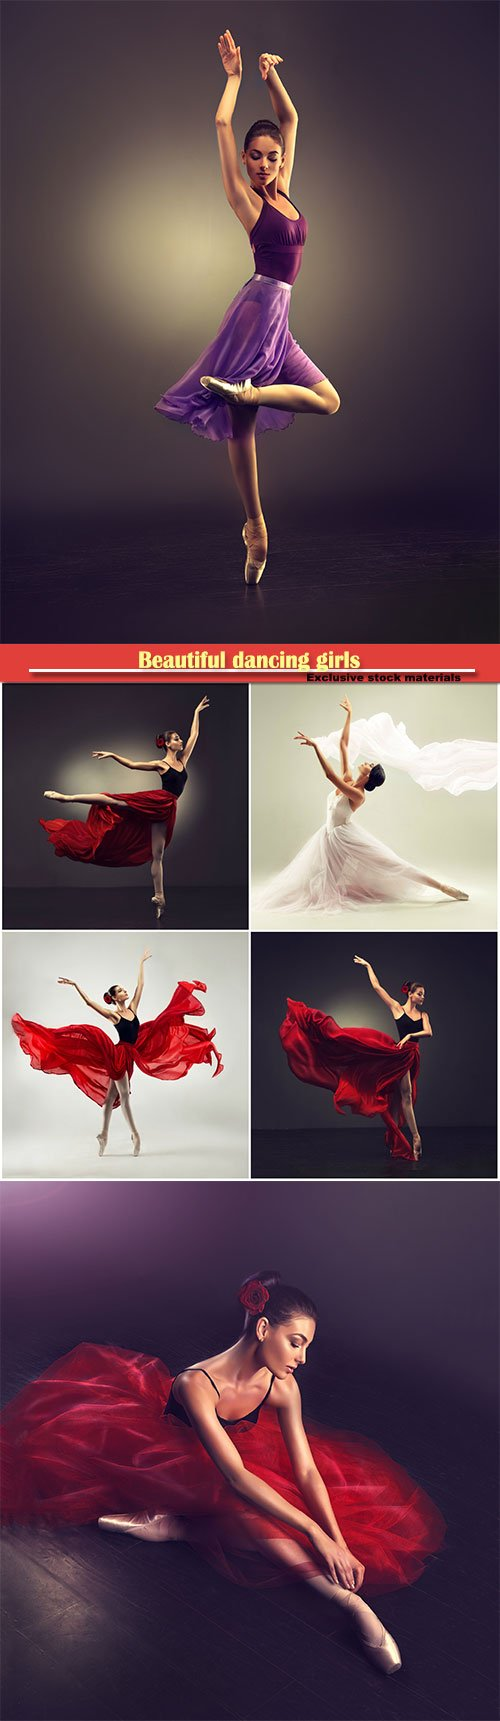 Beautiful dancing girls